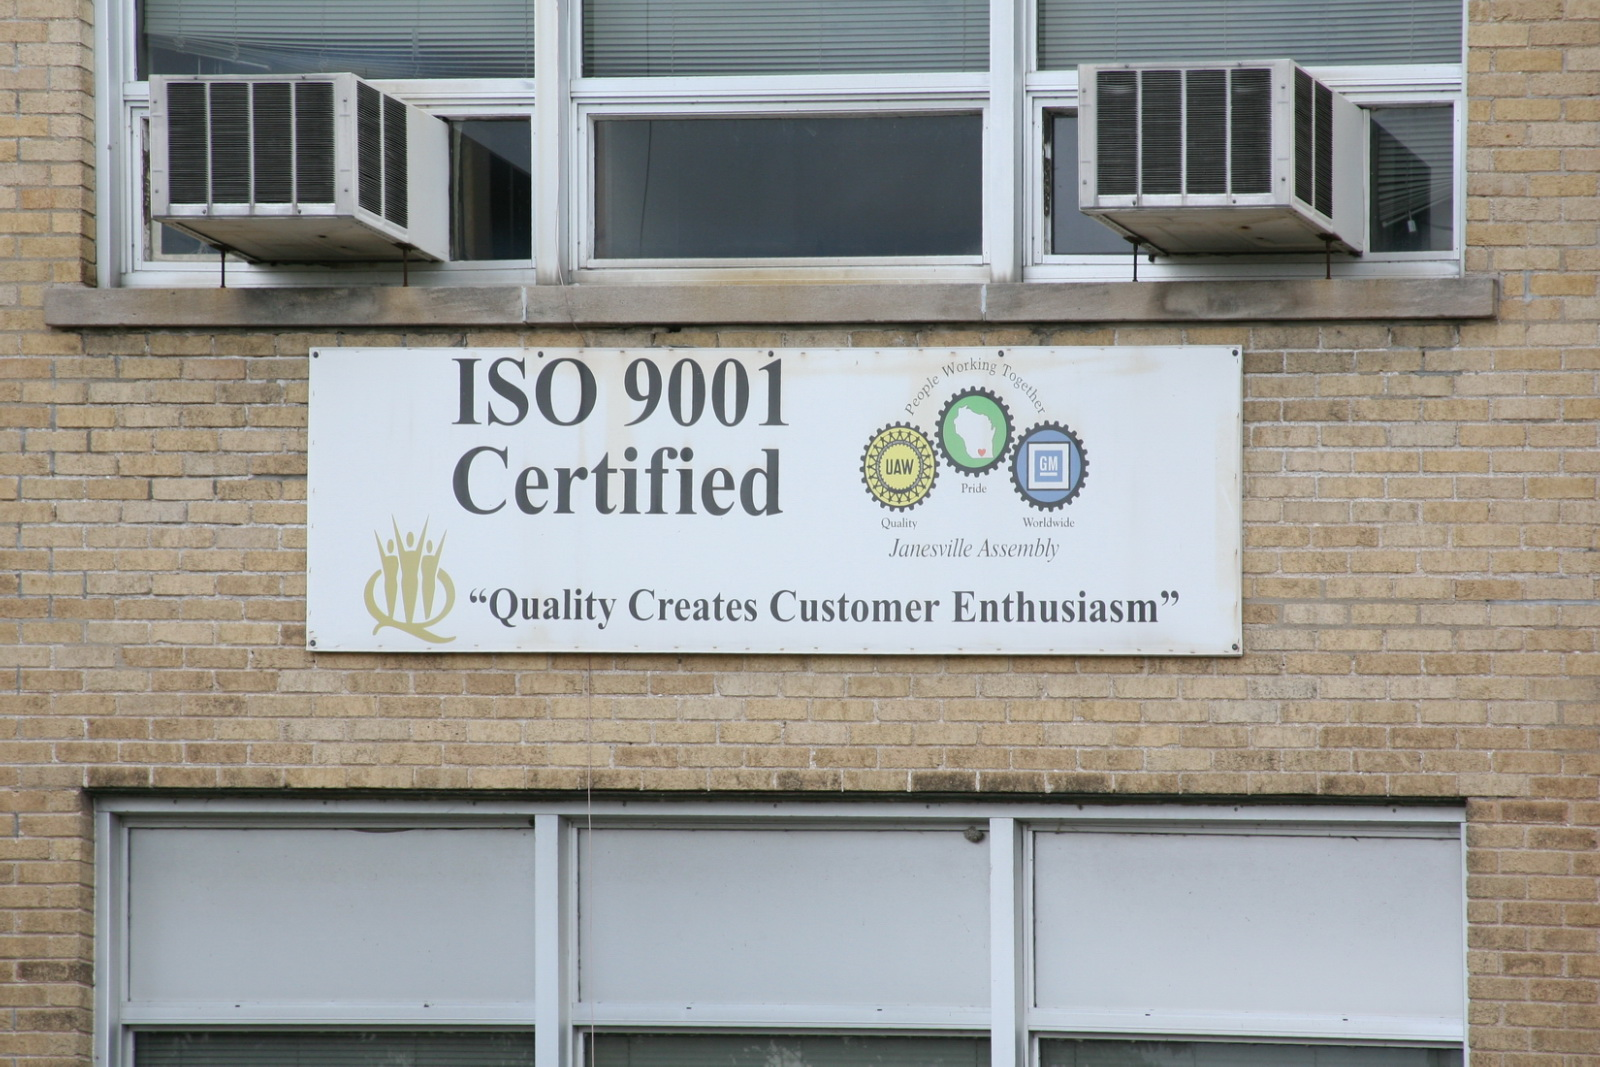 Janesville GM Assembly Plant - ISO 9001 Certified sign (3549915451).jpg